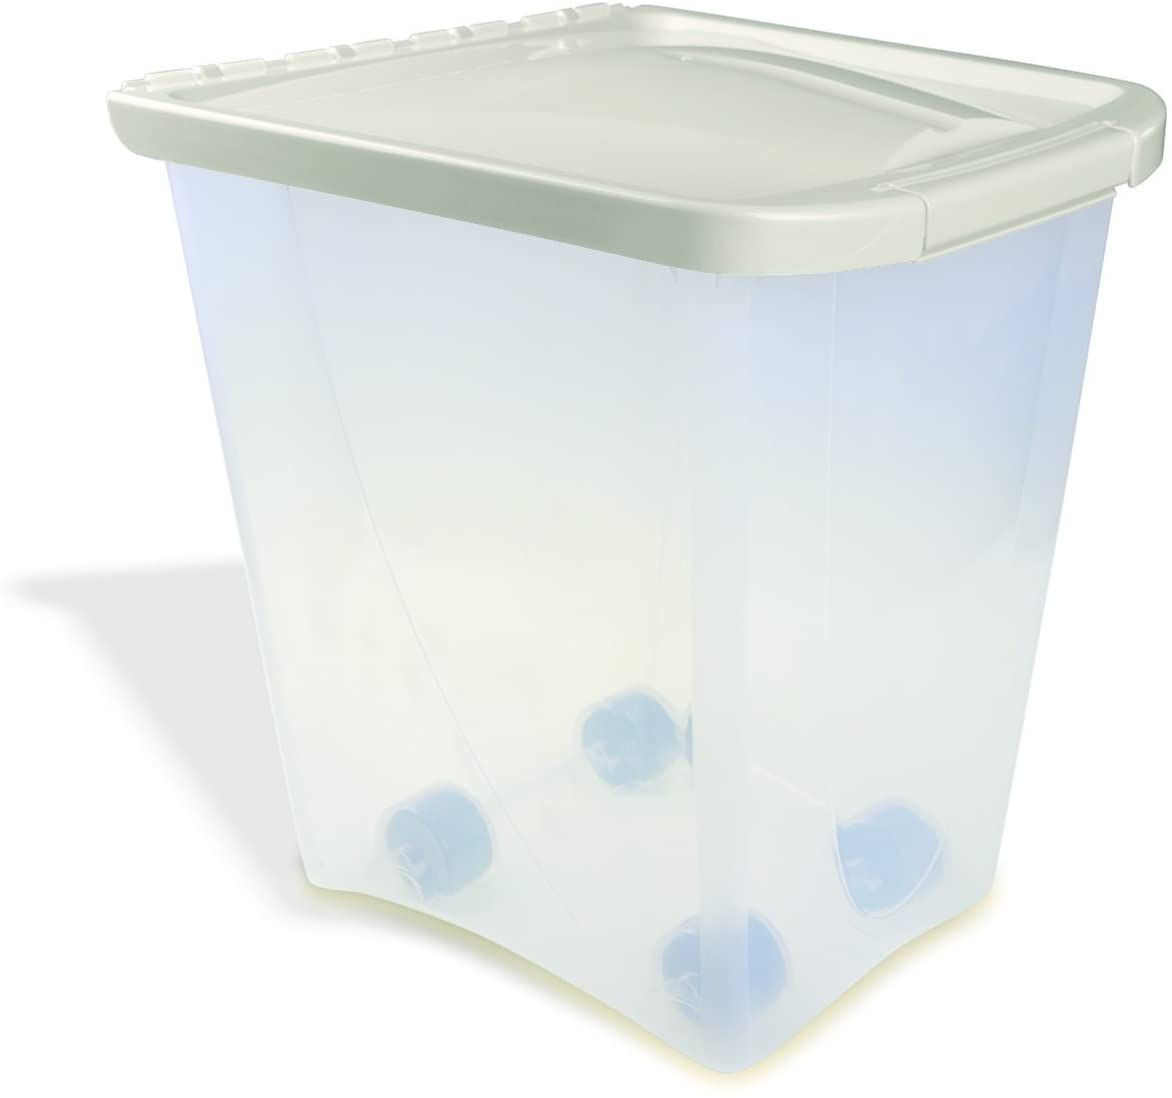 Van Ness Food Container with Fresh-Tite Seal with Wheels